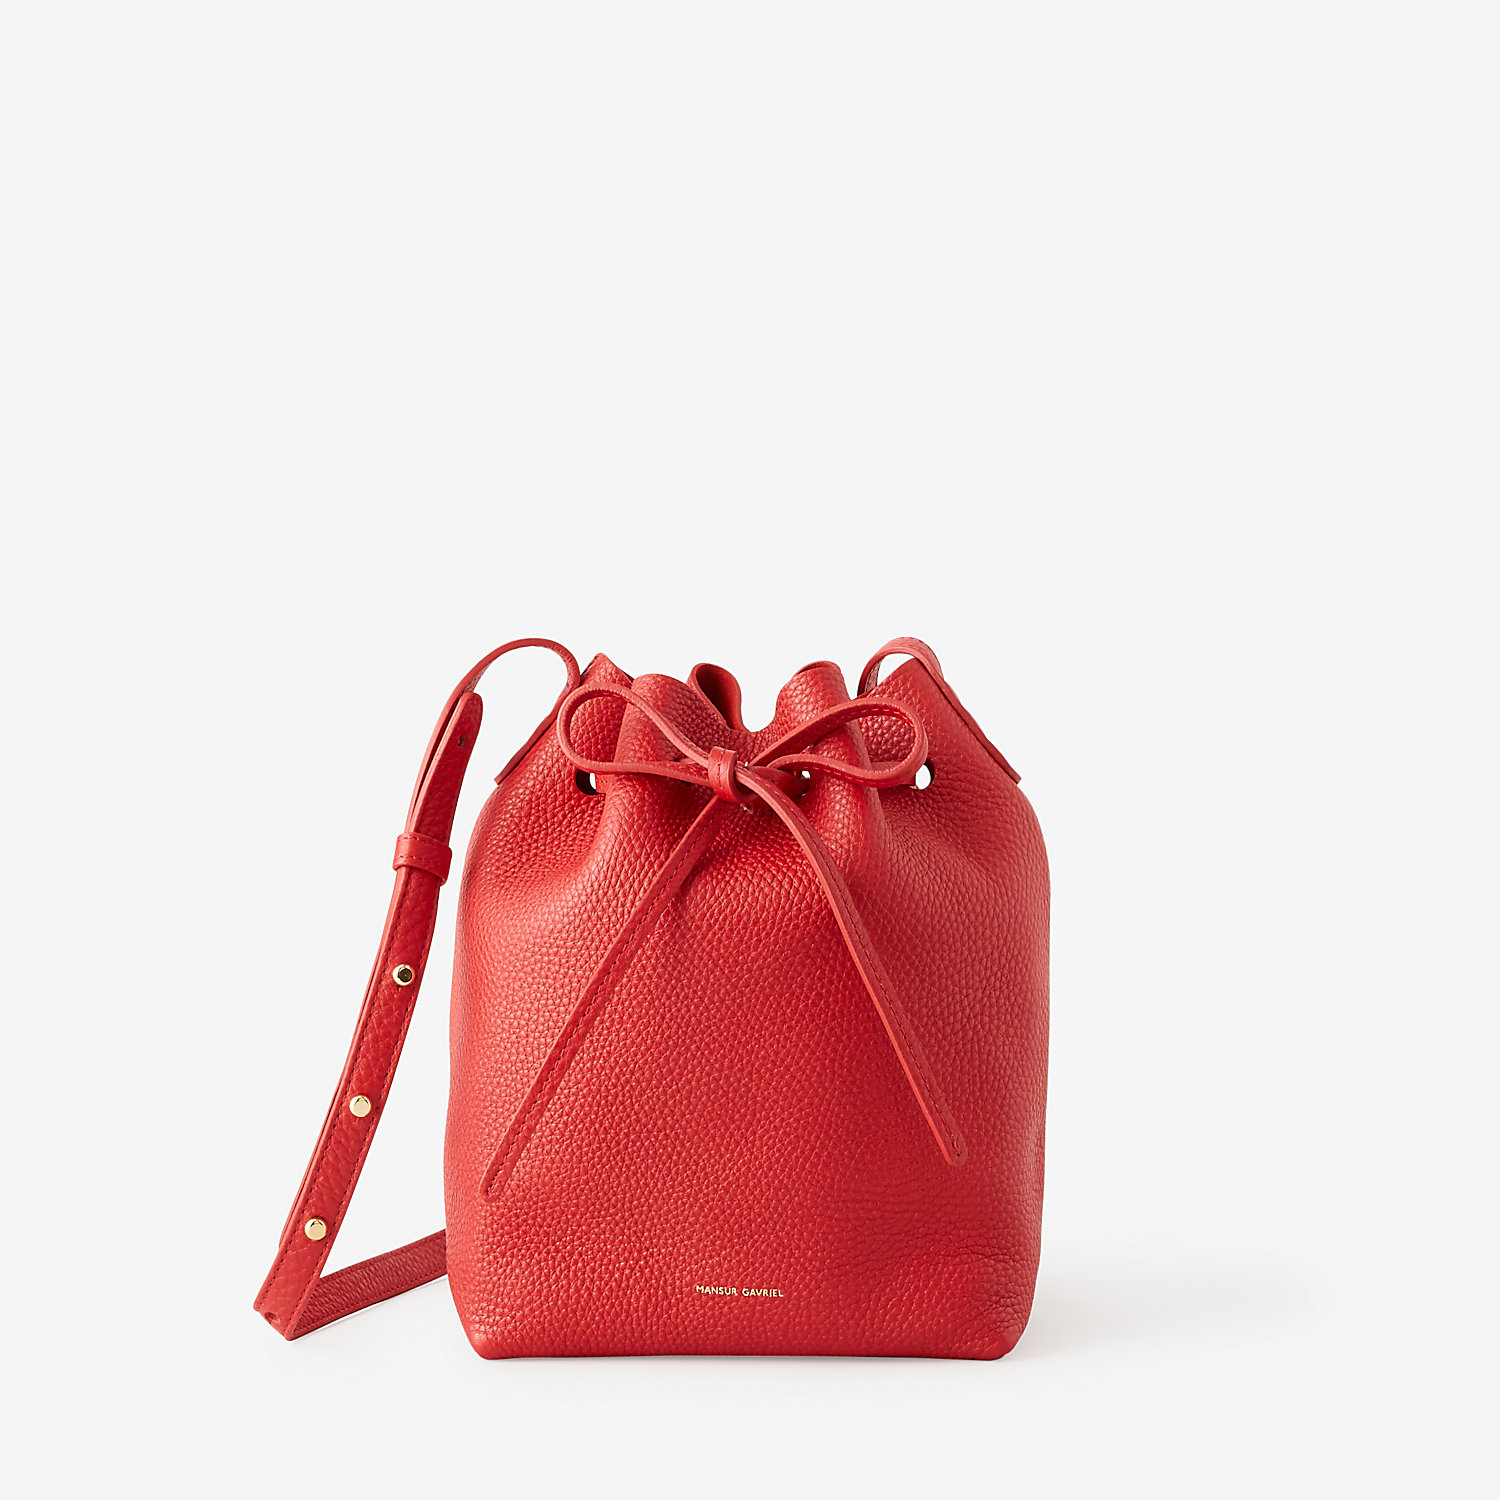 mansur gavriel mini tumbled leather bucket bag in red. Black Bedroom Furniture Sets. Home Design Ideas